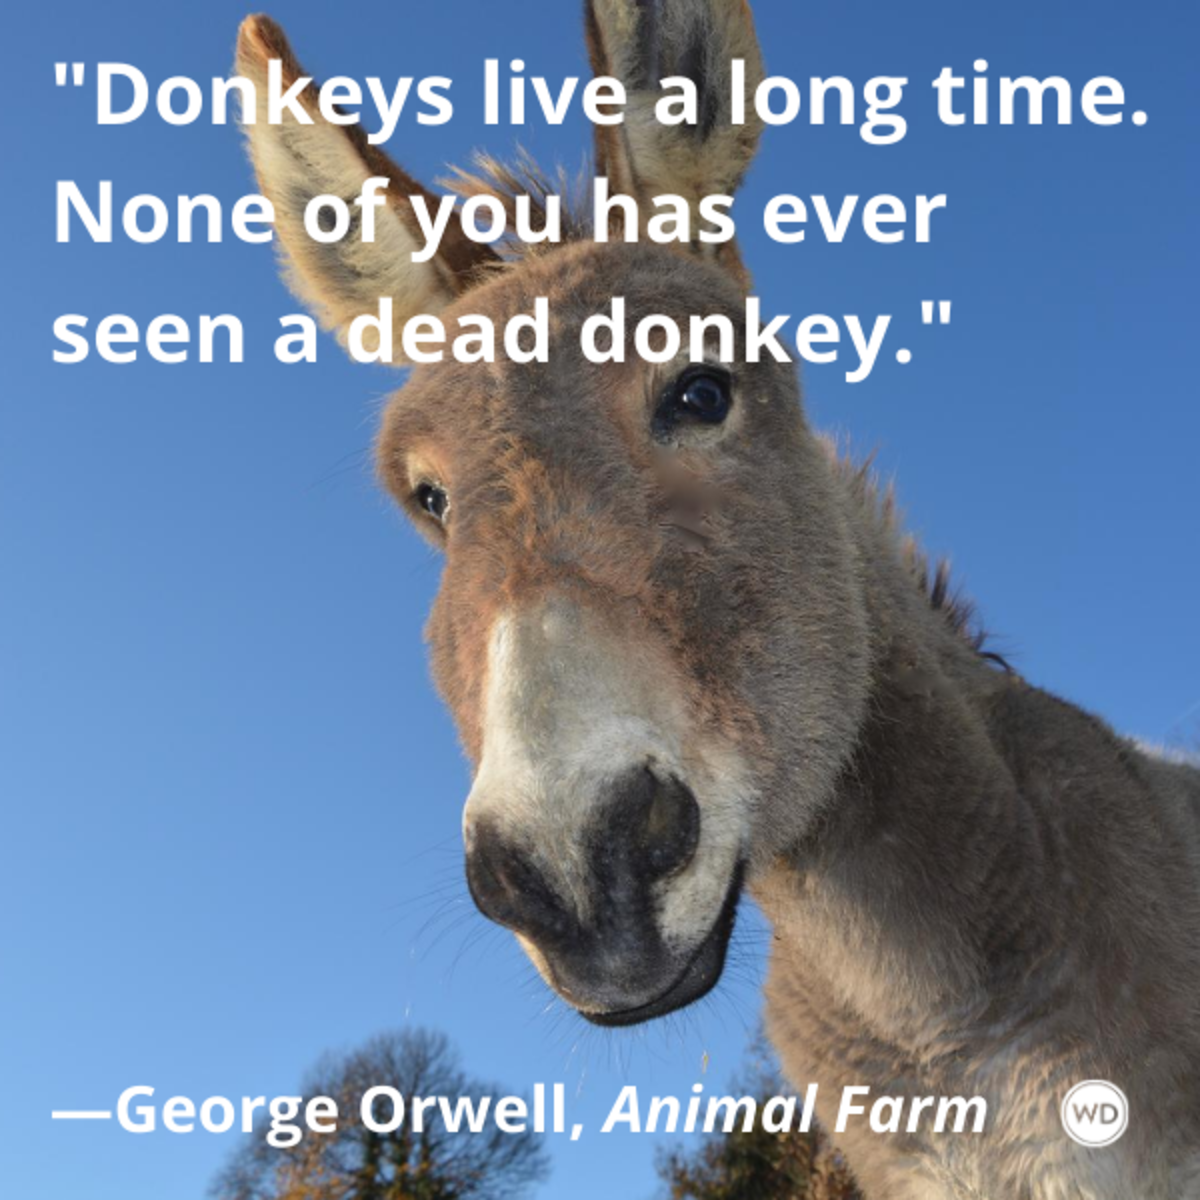 animal_farm_by_george_orwell_quotes_donkeys_live_a_long_time